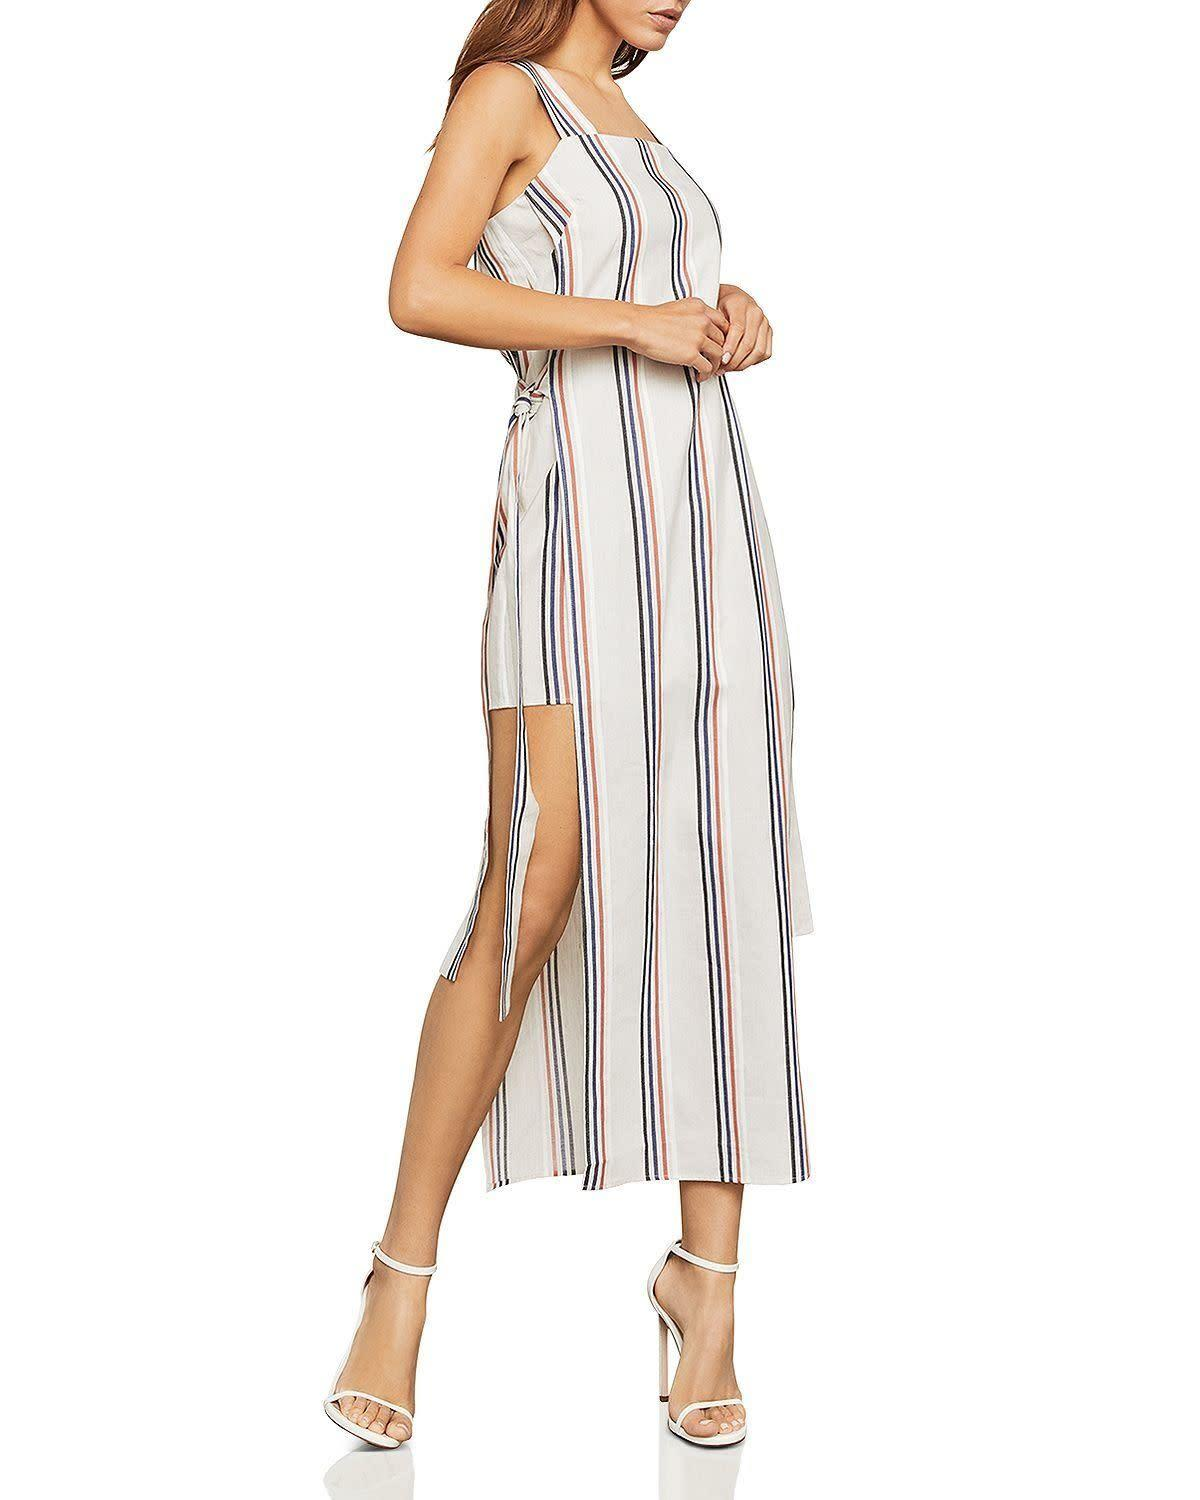 "<strong><a href=""https://www.bloomingdales.com/shop/product/bcbgmaxazria-side-tie-striped-maxi-dress?ID=2957650&amp;CategoryID=2910#fn=ppp%3Dundefined%26sp%3DNULL%26rId%3DNULL%26spc%3D18%26cm_kws%3Dbcbg%20striped%20dress%26spp%3D10%26pn%3D1%7C1%7C10%7C18%26rsid%3Dundefined%26smp%3DallMultiMatchWithSpelling"" rel=""nofollow noopener"" target=""_blank"" data-ylk=""slk:BCBG MaxAzria side-tie striped dress"" class=""link rapid-noclick-resp"">BCBG MaxAzria side-tie striped dress</a>, $118</strong>"